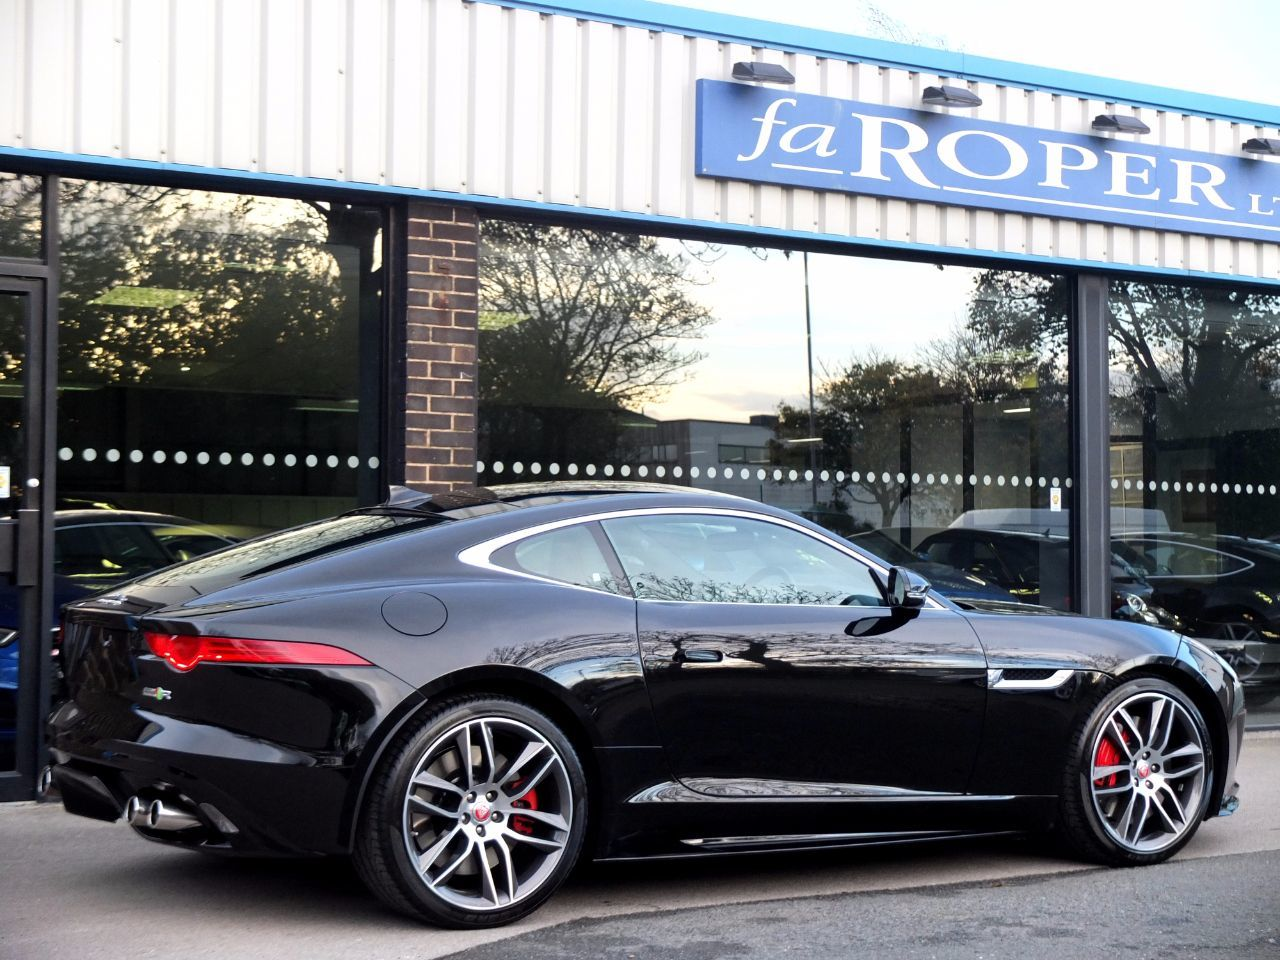 Jaguar F-type 5.0 Supercharged V8 R Auto AWD 550ps Coupe Petrol Ultimate Black Metallic